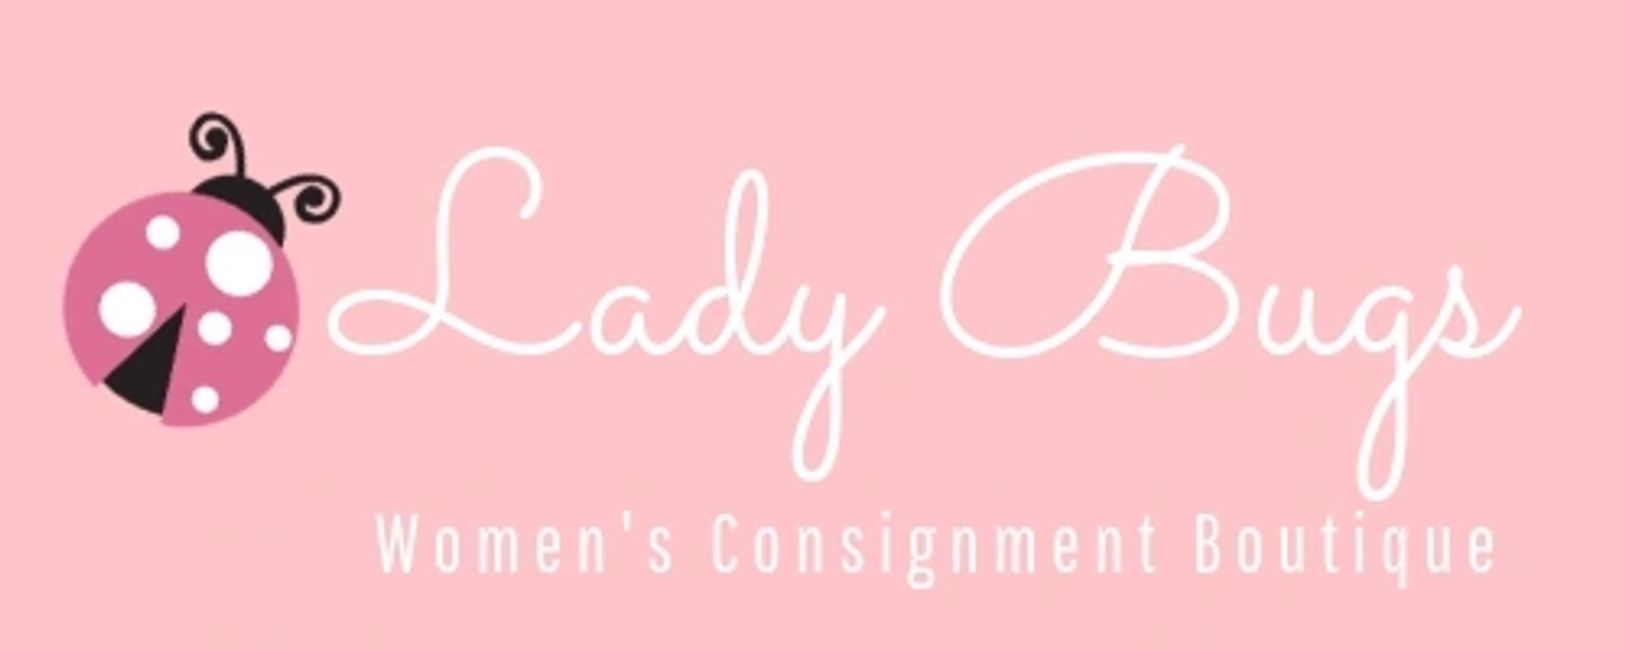 Women's and maternity consignment